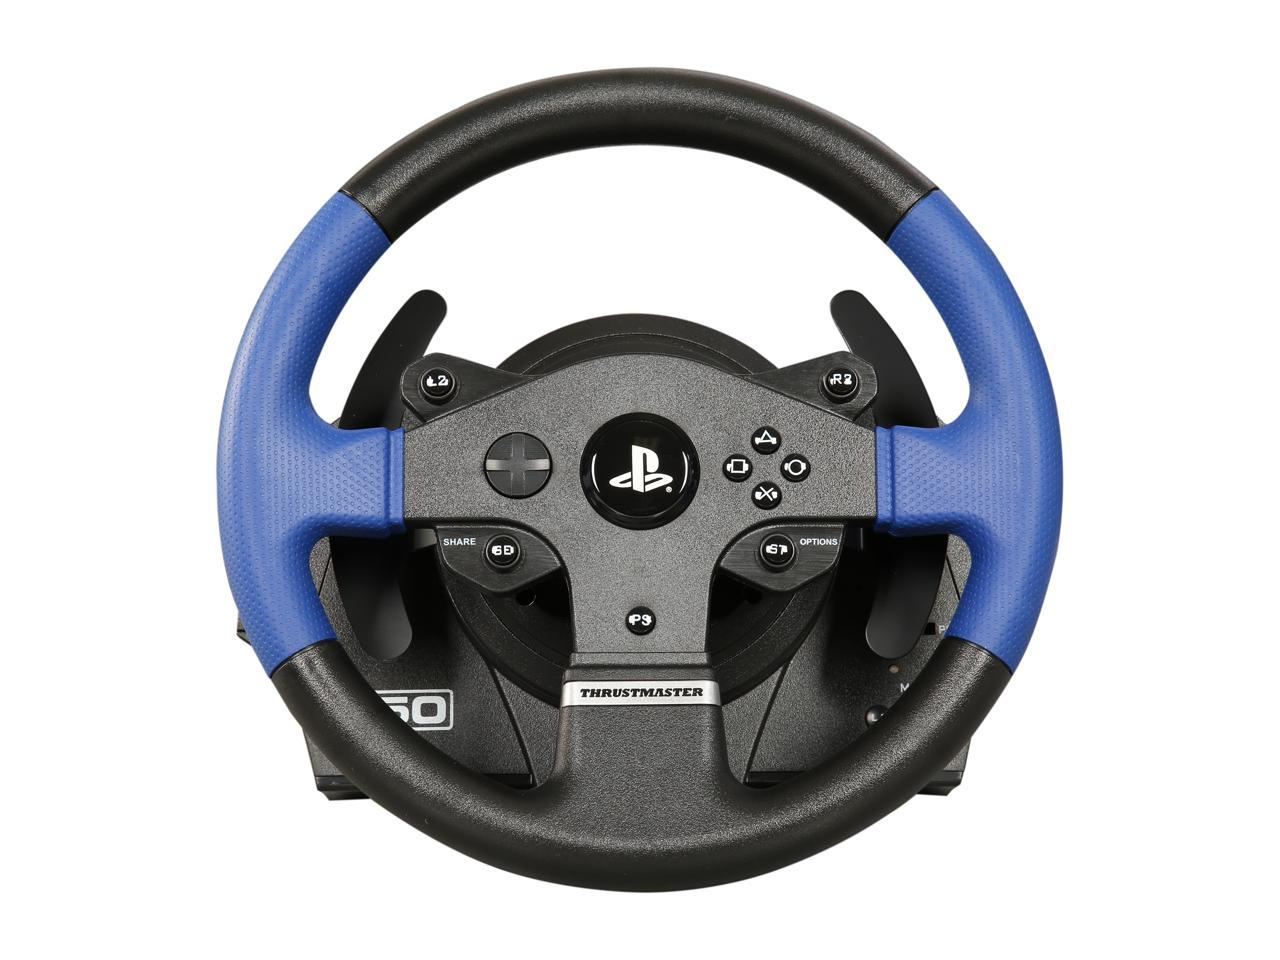 Details about Thrustmaster T150 Rs Force Feedback Racing Wheel -  PlayStation 4